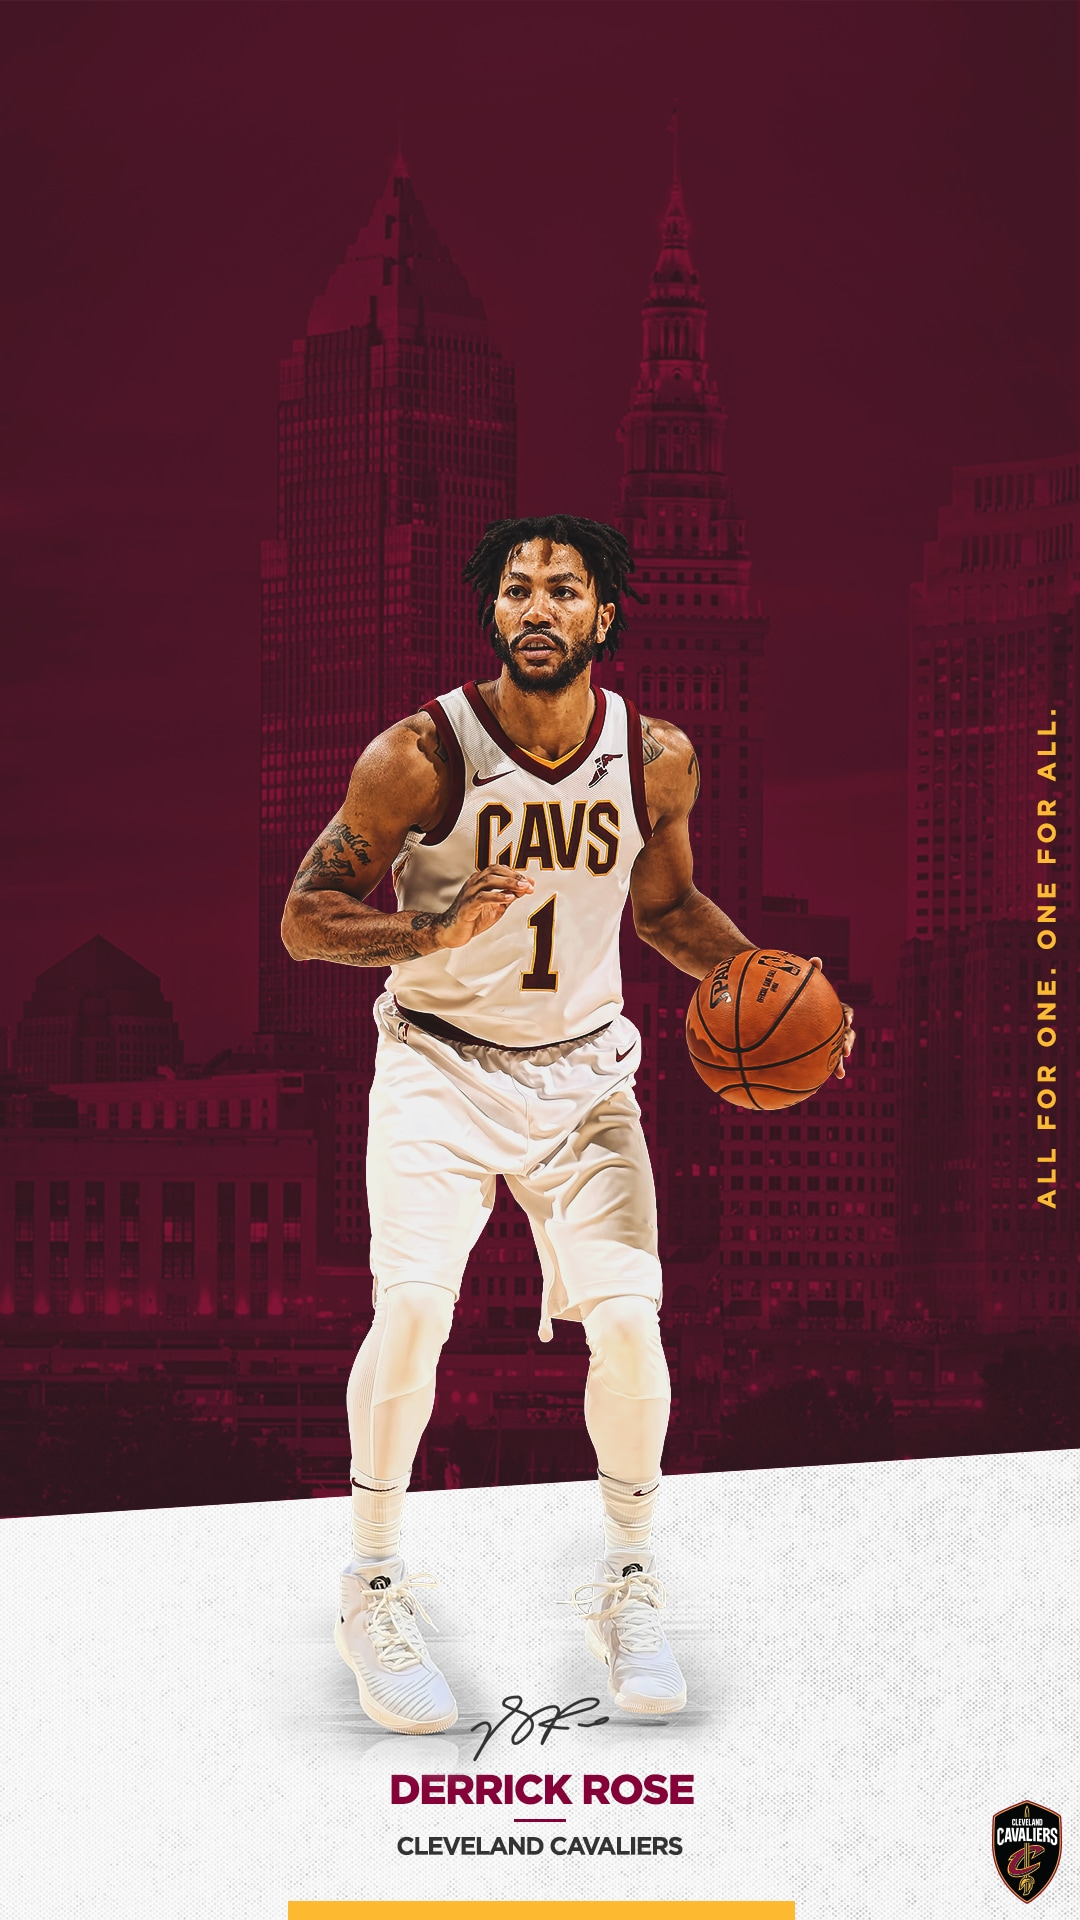 Wallpapers cleveland cavaliers - Derrick rose cavs wallpaper ...